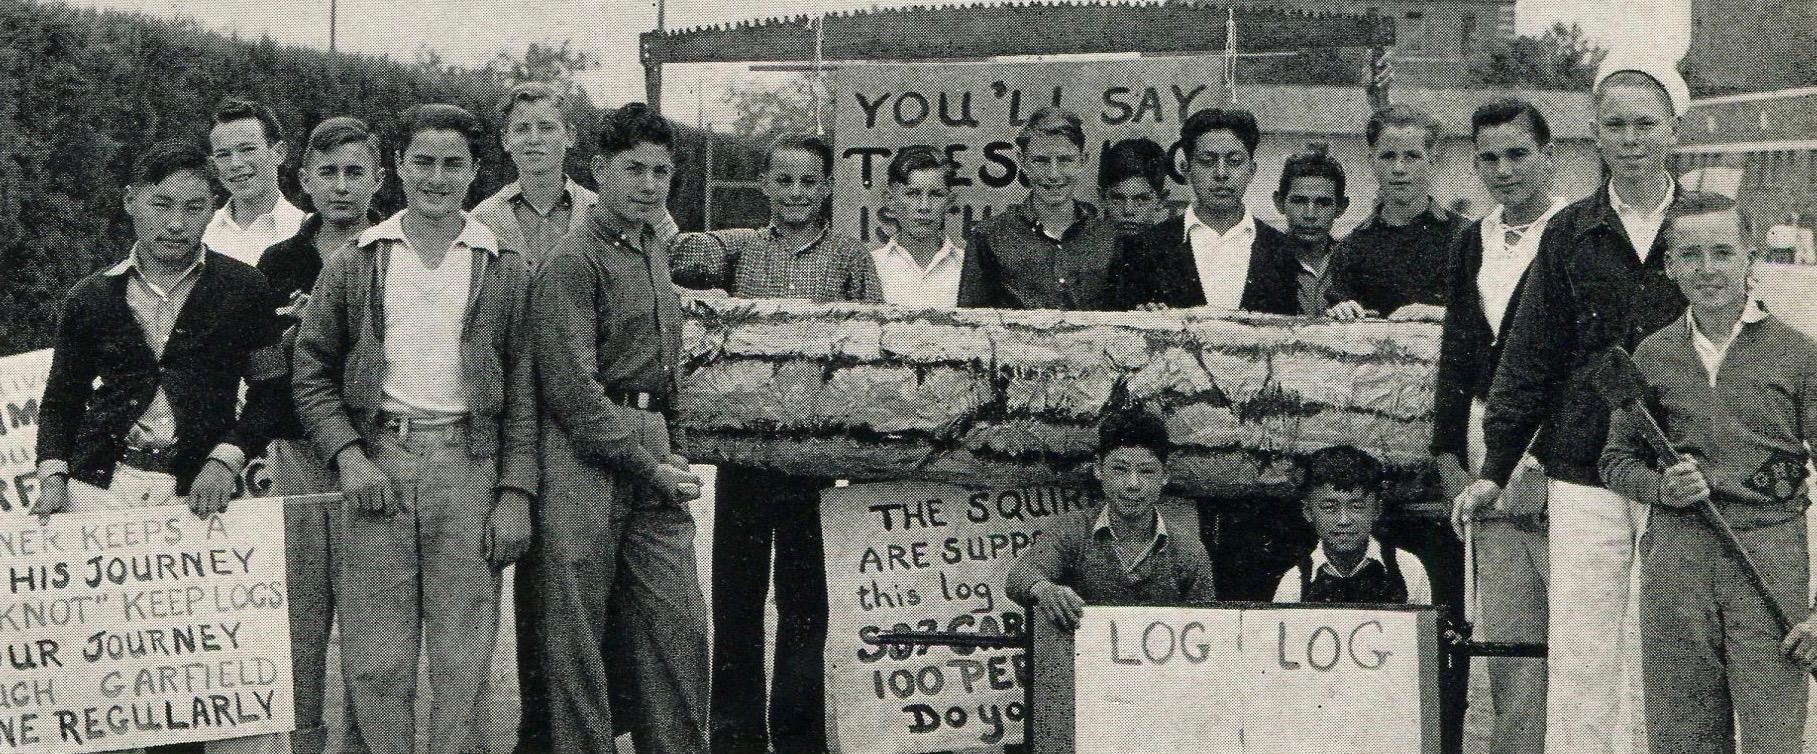 Squires advertising the Log